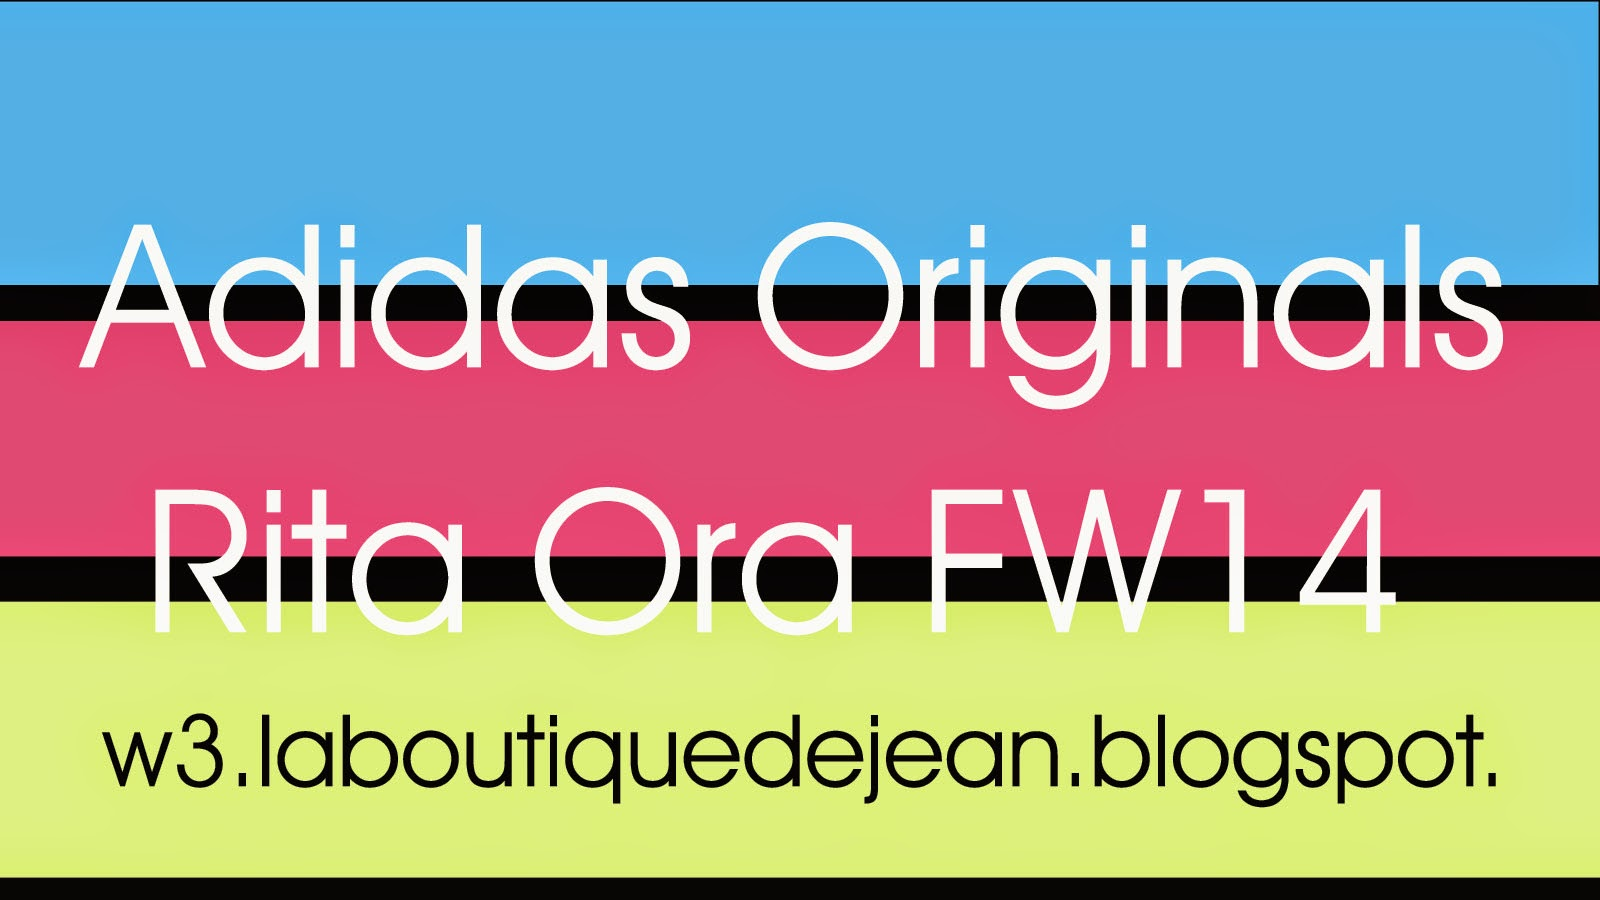 Rita Ora Capsule Collection for Adidas Originals FW14 by Jean